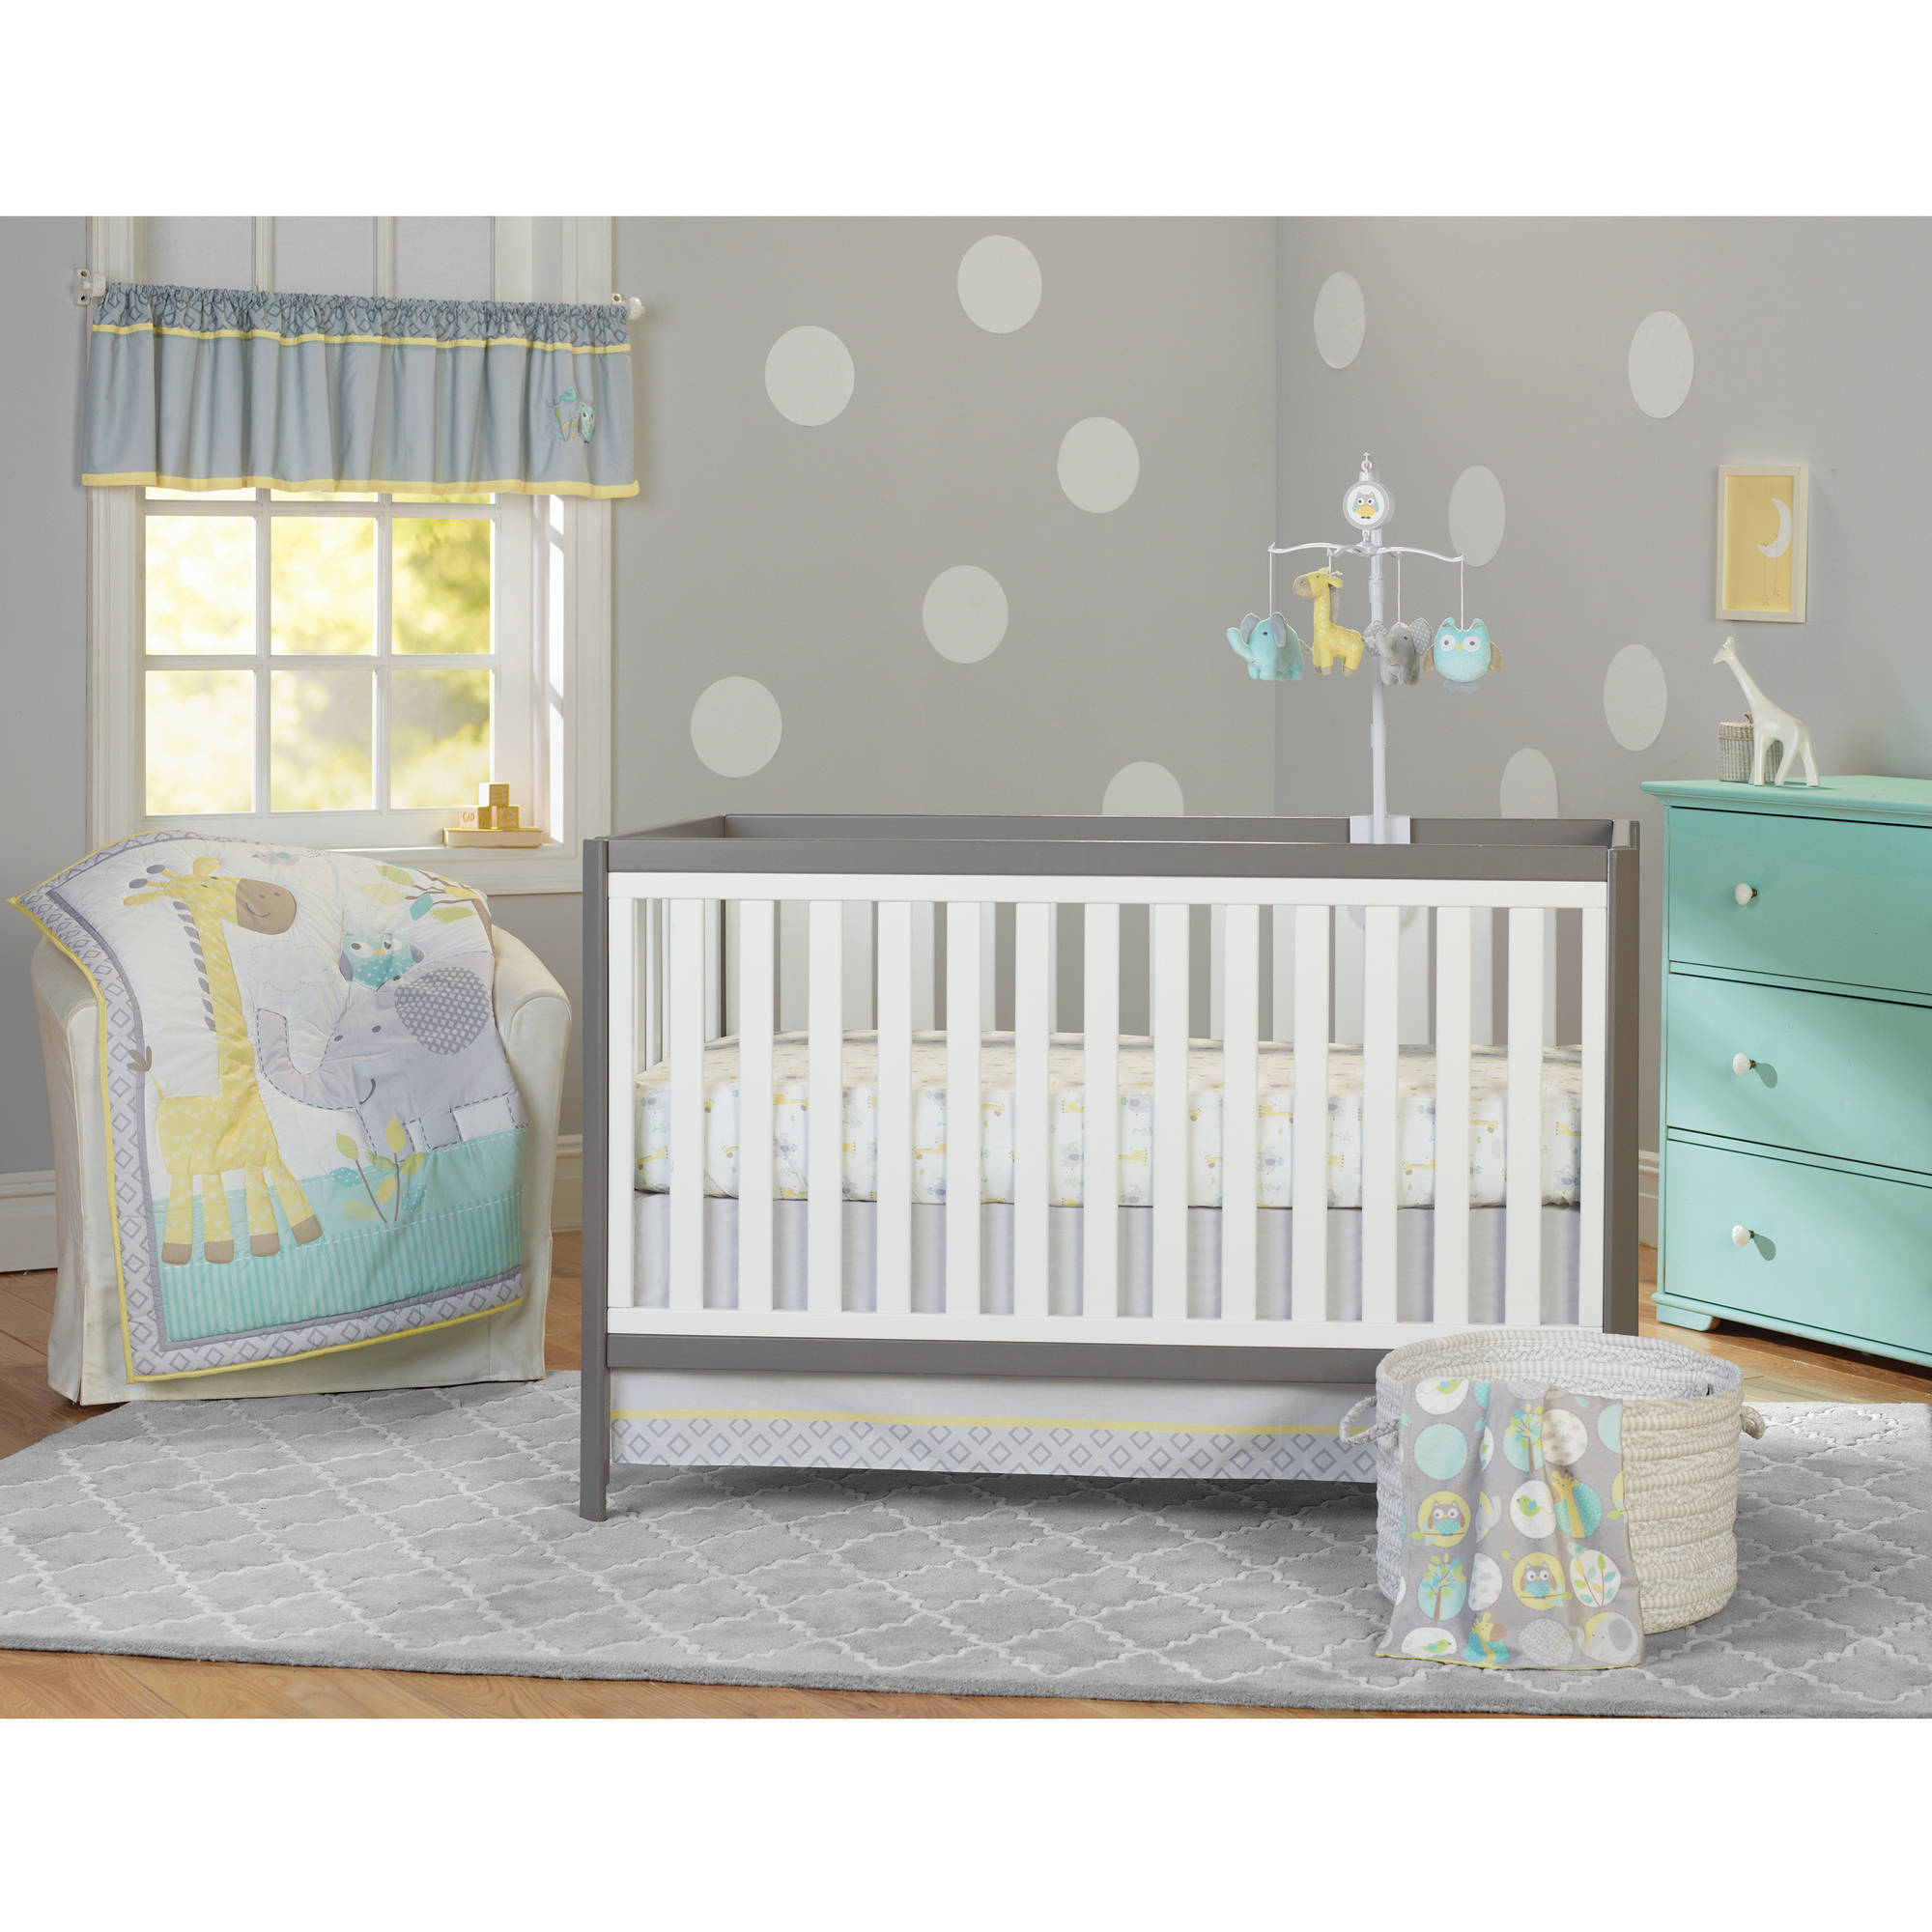 garanimals animal crackers 3-piece crib bedding set - walmart